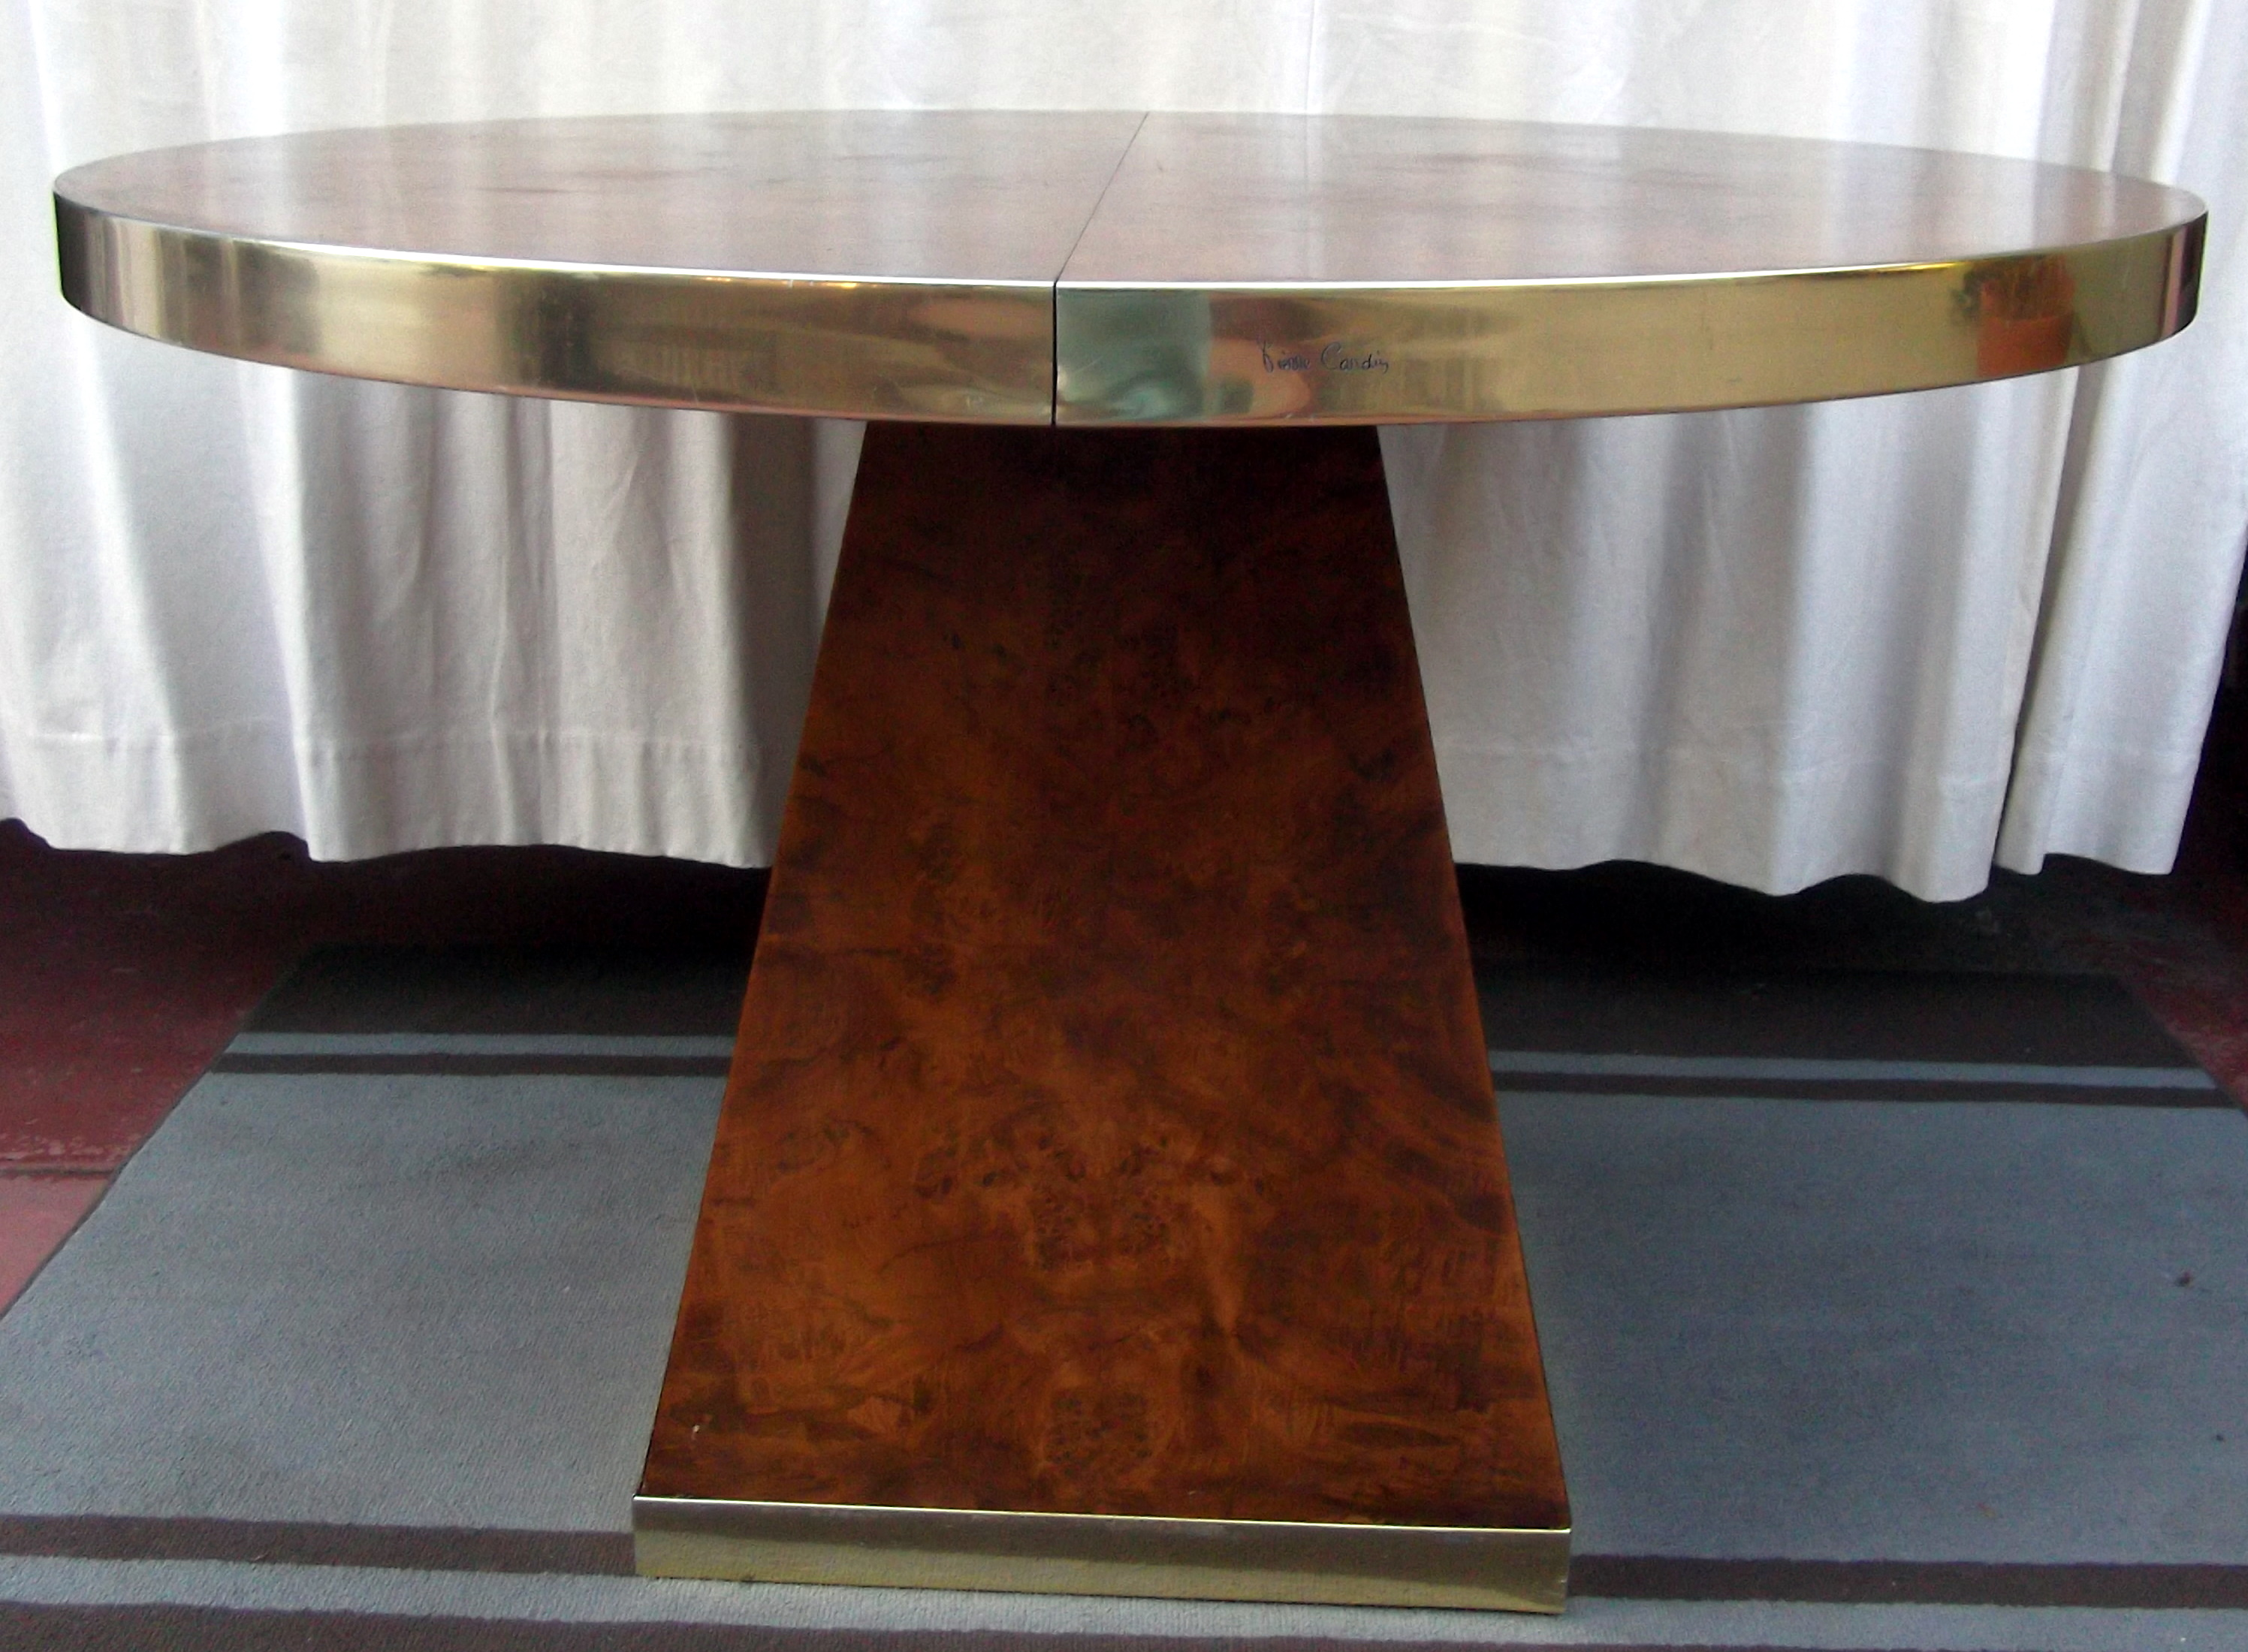 Signed Pierre Cardin Olive Ash Burl Wood and Brass Table 1970s